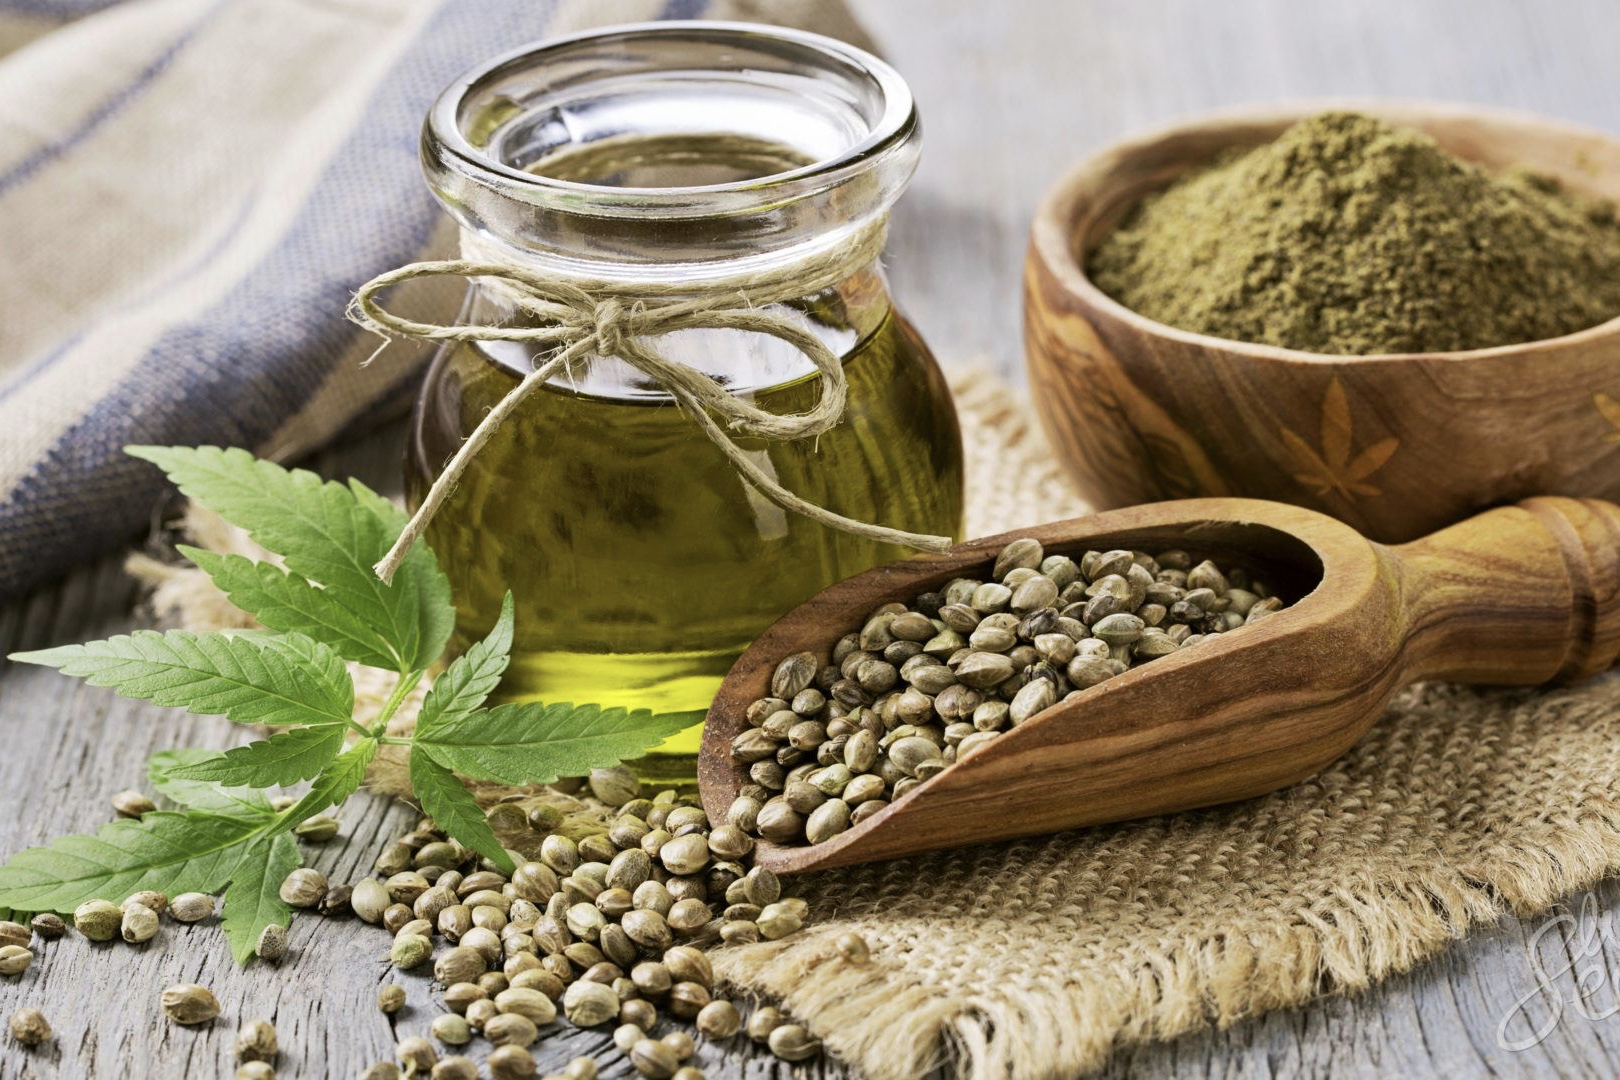 Hemp,Hemp Paper,Hemp Clothing,Hemp Oil,Hemp Protein,Environment,Save Wildlife,Cannabis,Marijuana,News,Hemp Farms,Legalize Hemp Farming,NewsFeeds24,Breaking News,Benefits of Hemp,Hemp Jewelry,